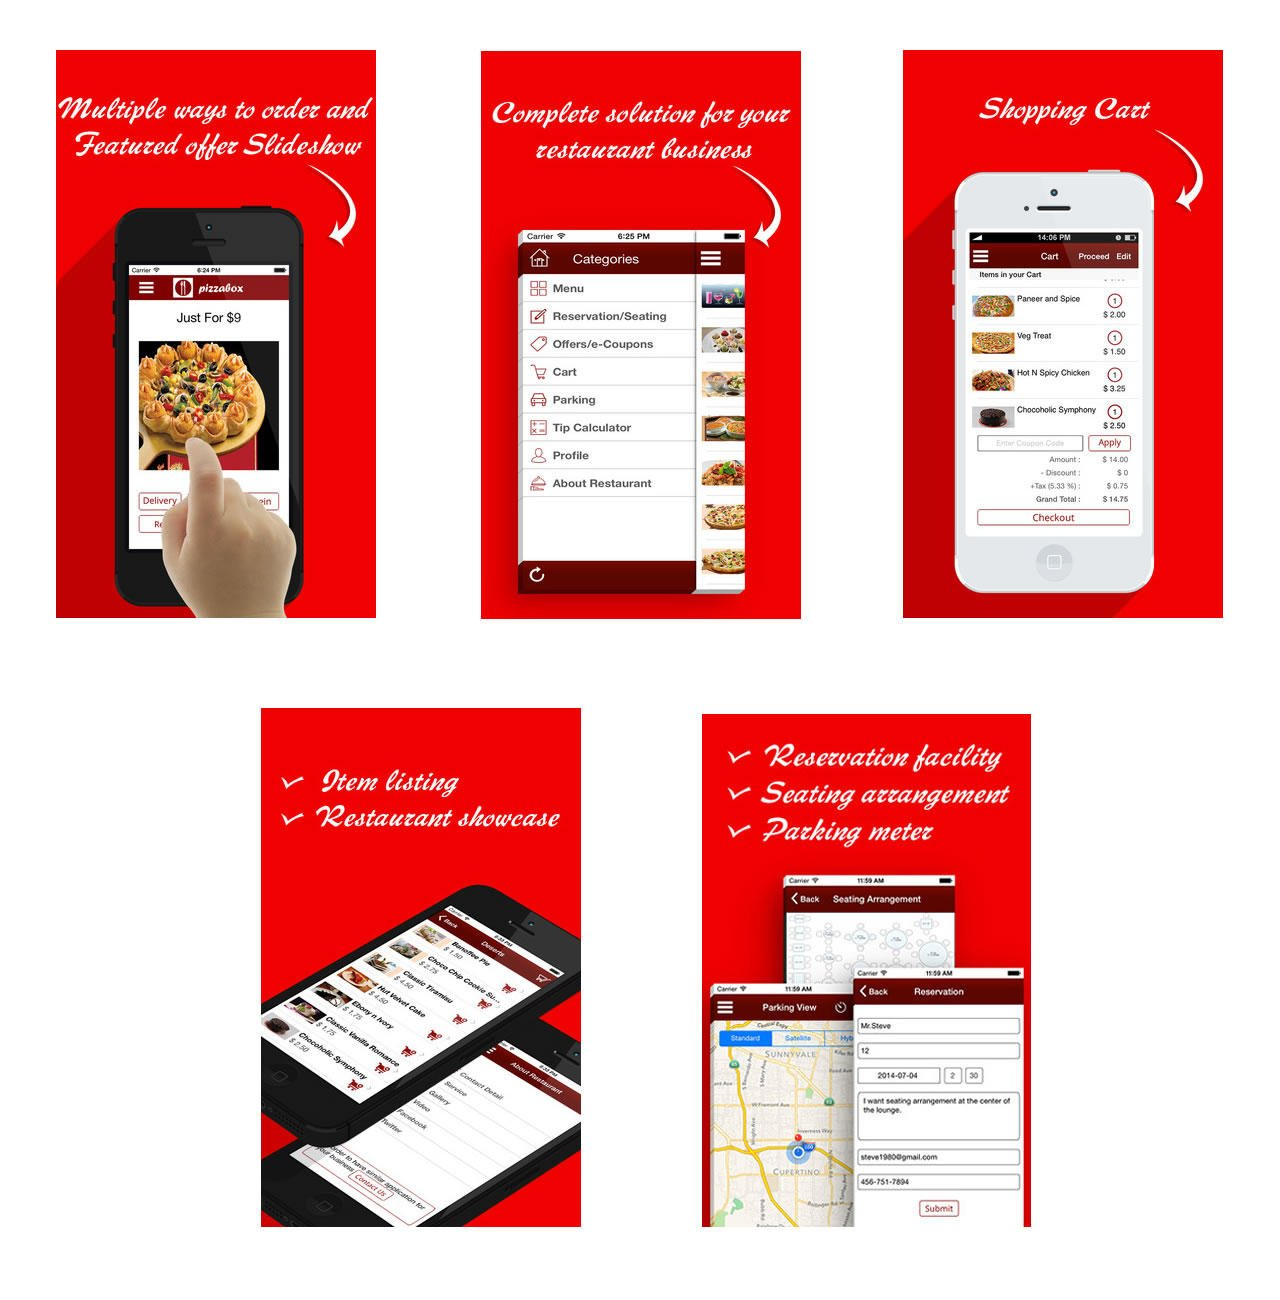 Restaurant app for iOS and Android by dasinfomedia - 75781